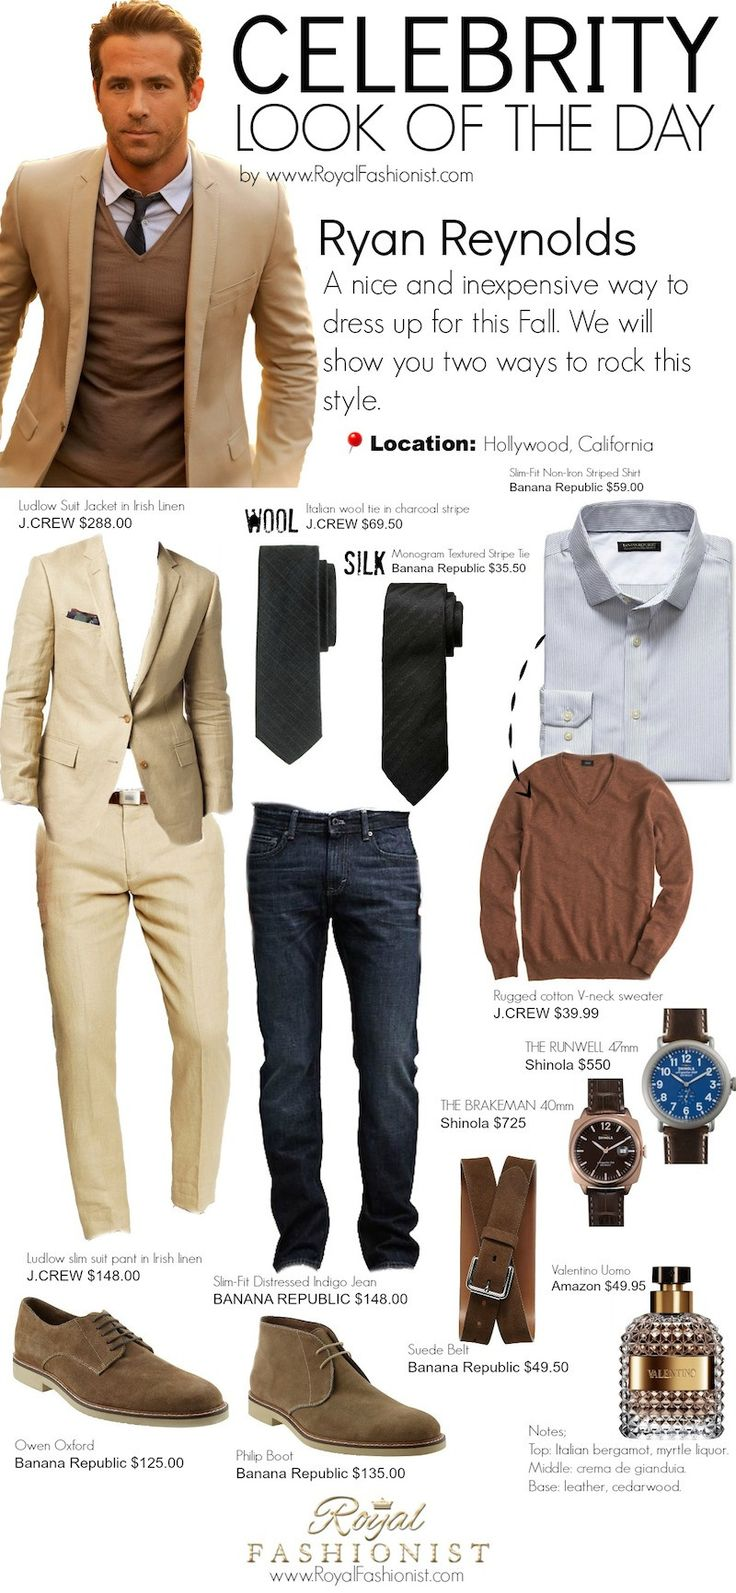 Celebrity Look of the Day: #RyanReynolds #Mensfashion Fall Outfit Idea